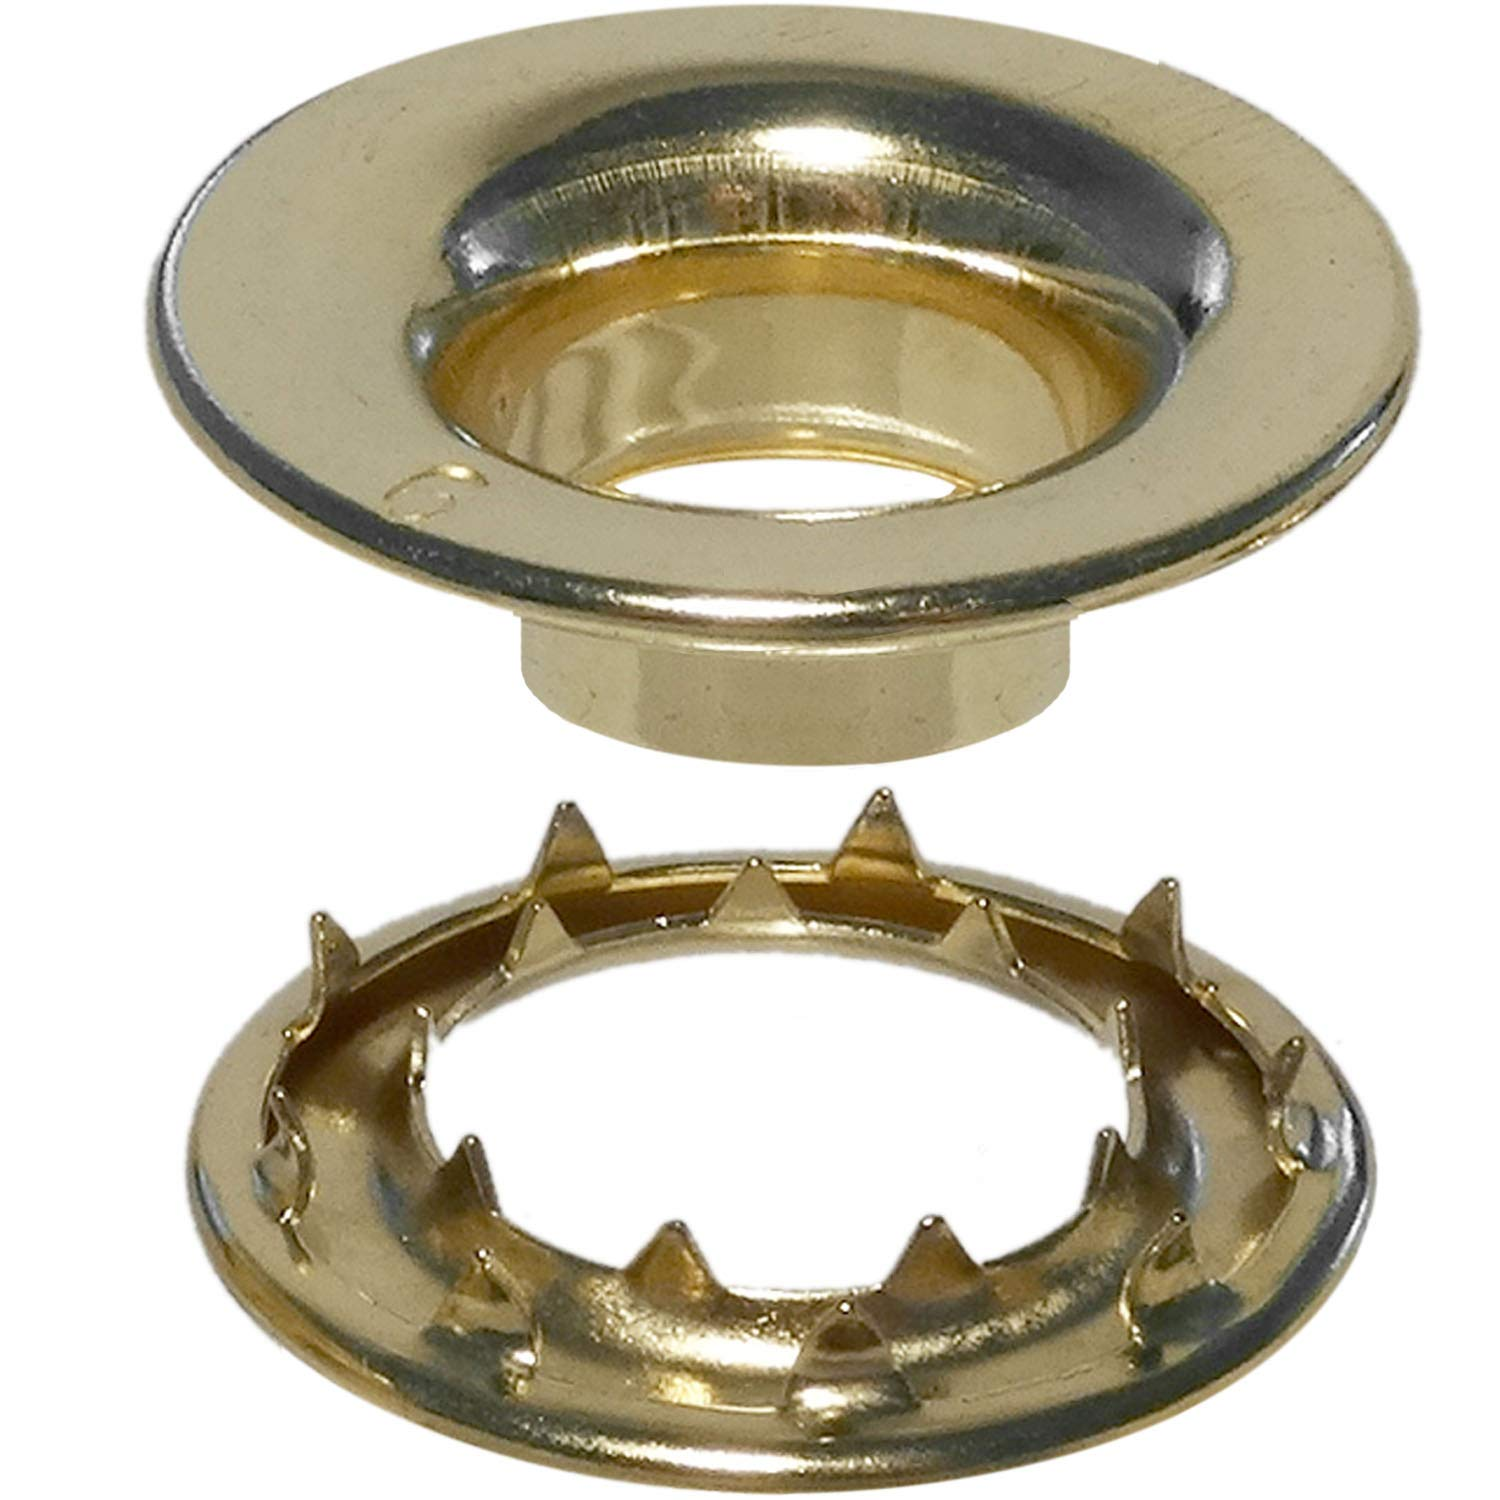 Stimpson Rolled Rim Grommet and Spur Washer Brass Durable, Reliable, Heavy-Duty #6 Set (144 pieces of each)